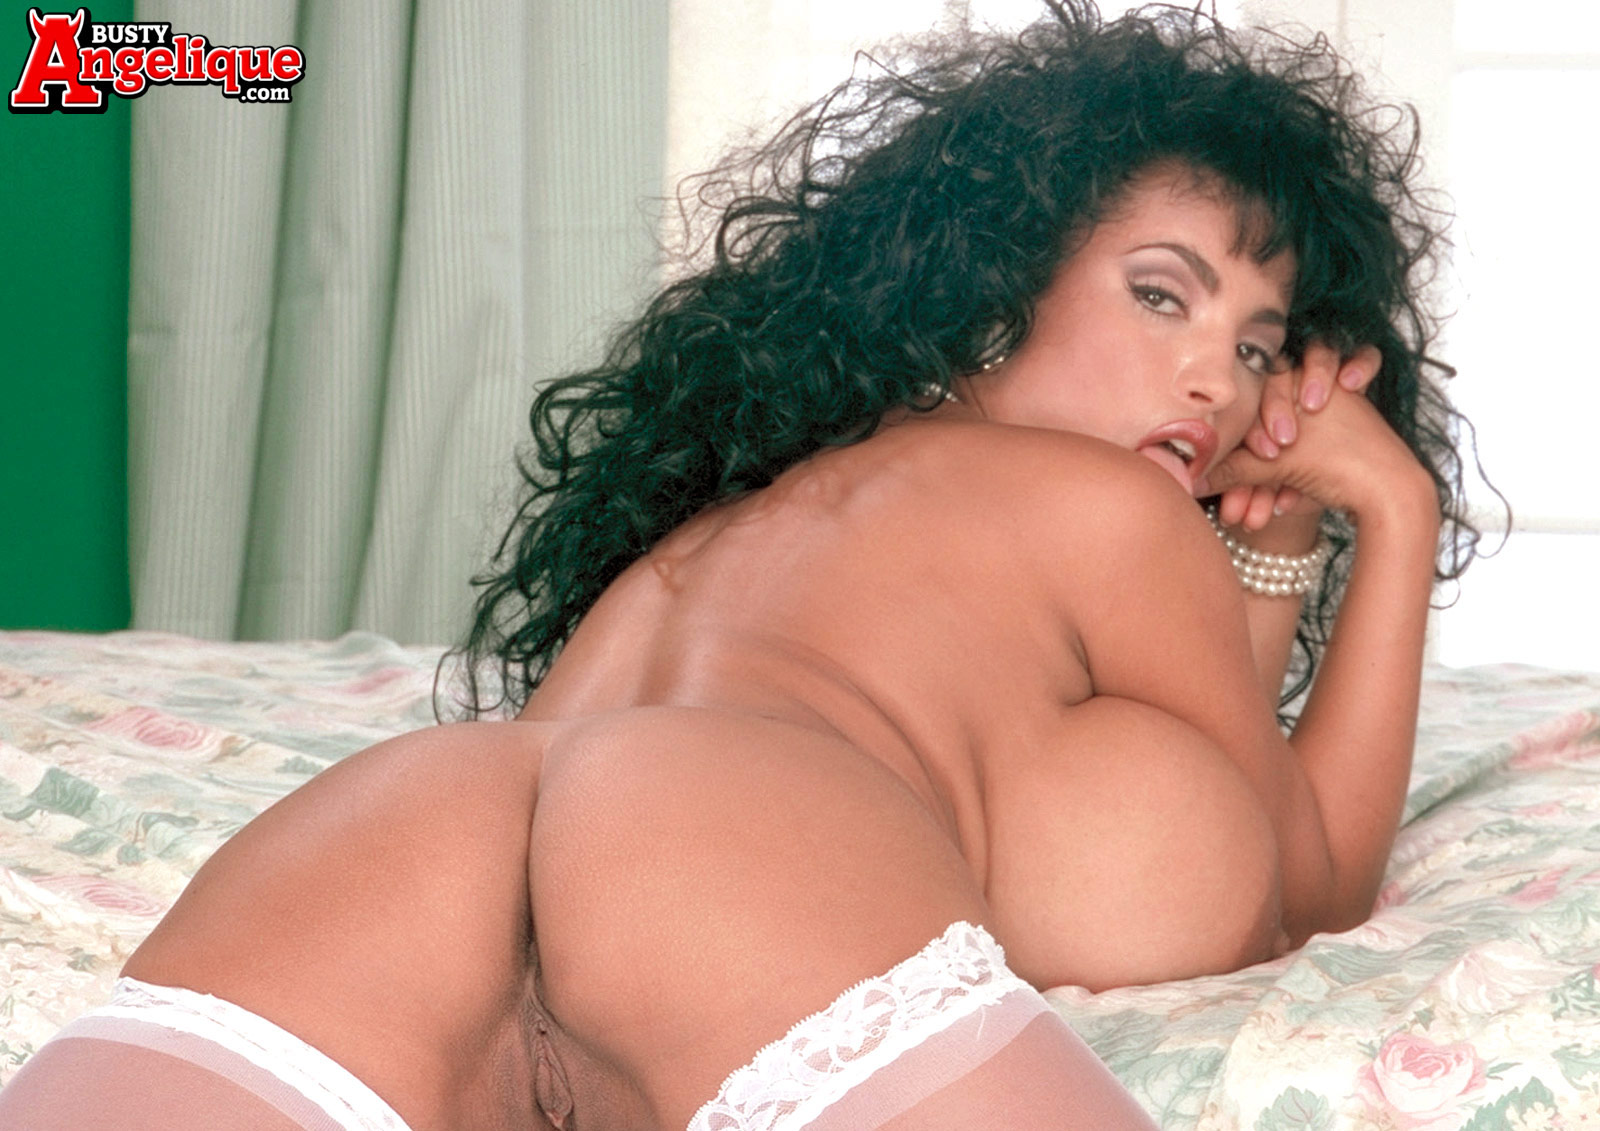 anal angelique busty